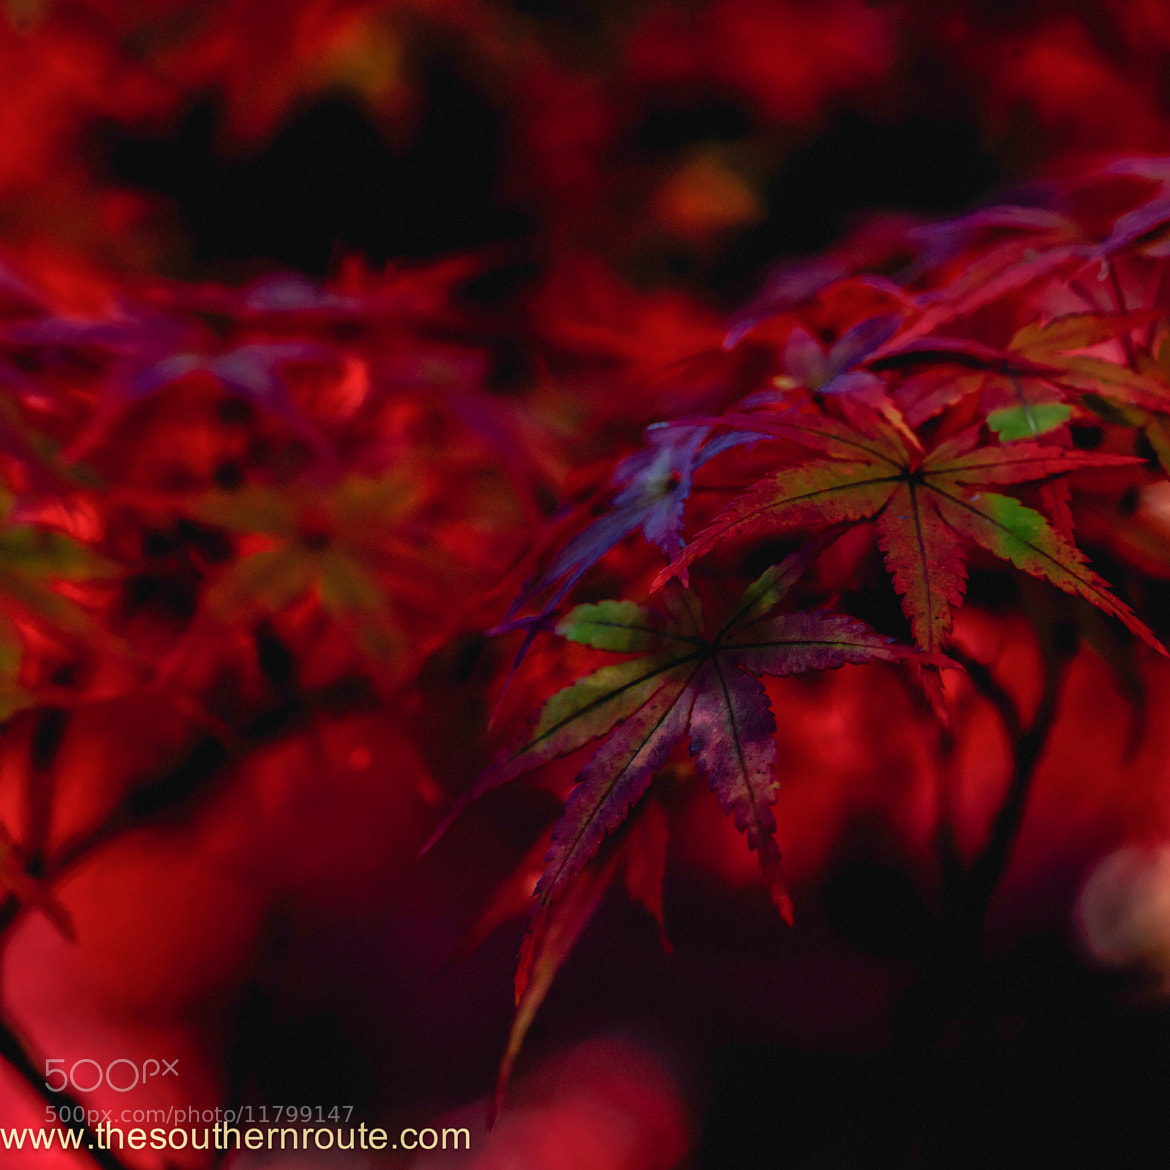 Photograph Cherry merry fancy by regis boileau on 500px